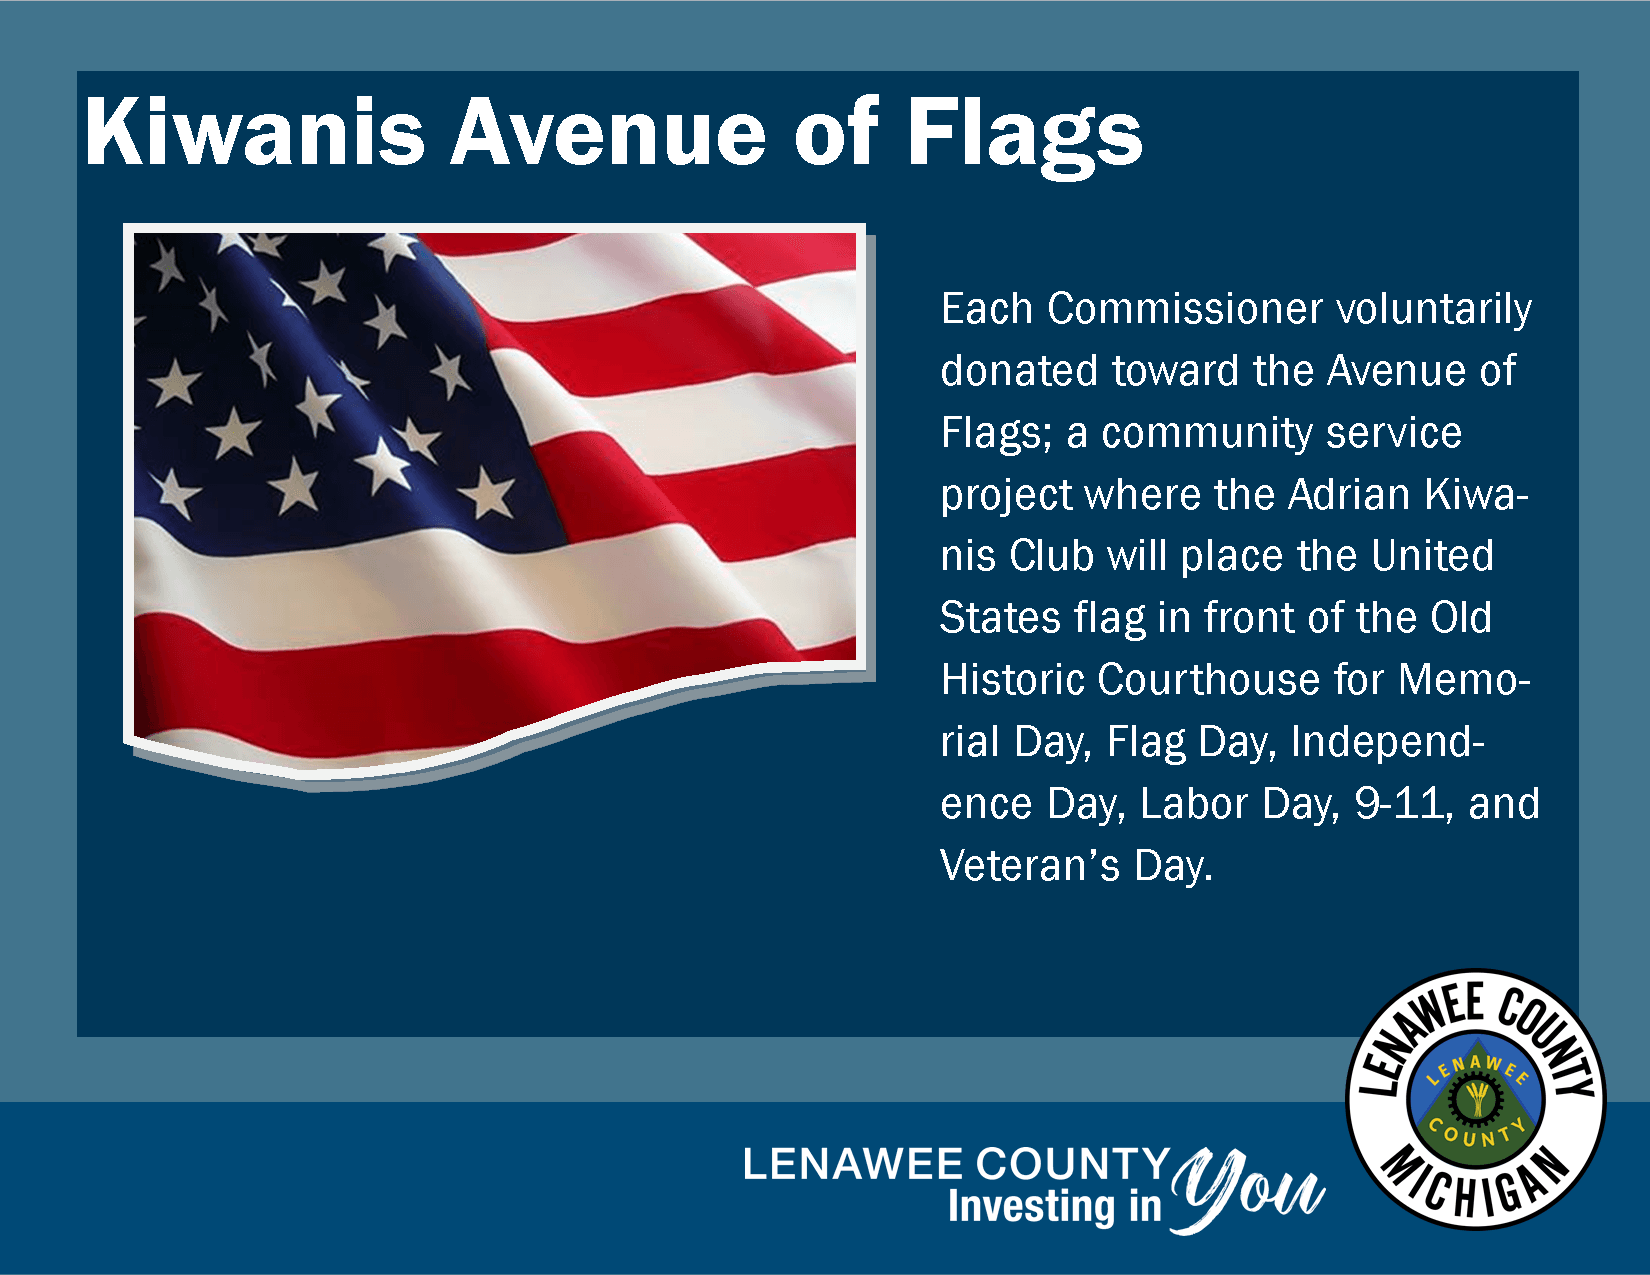 Kiwanis Flag Project